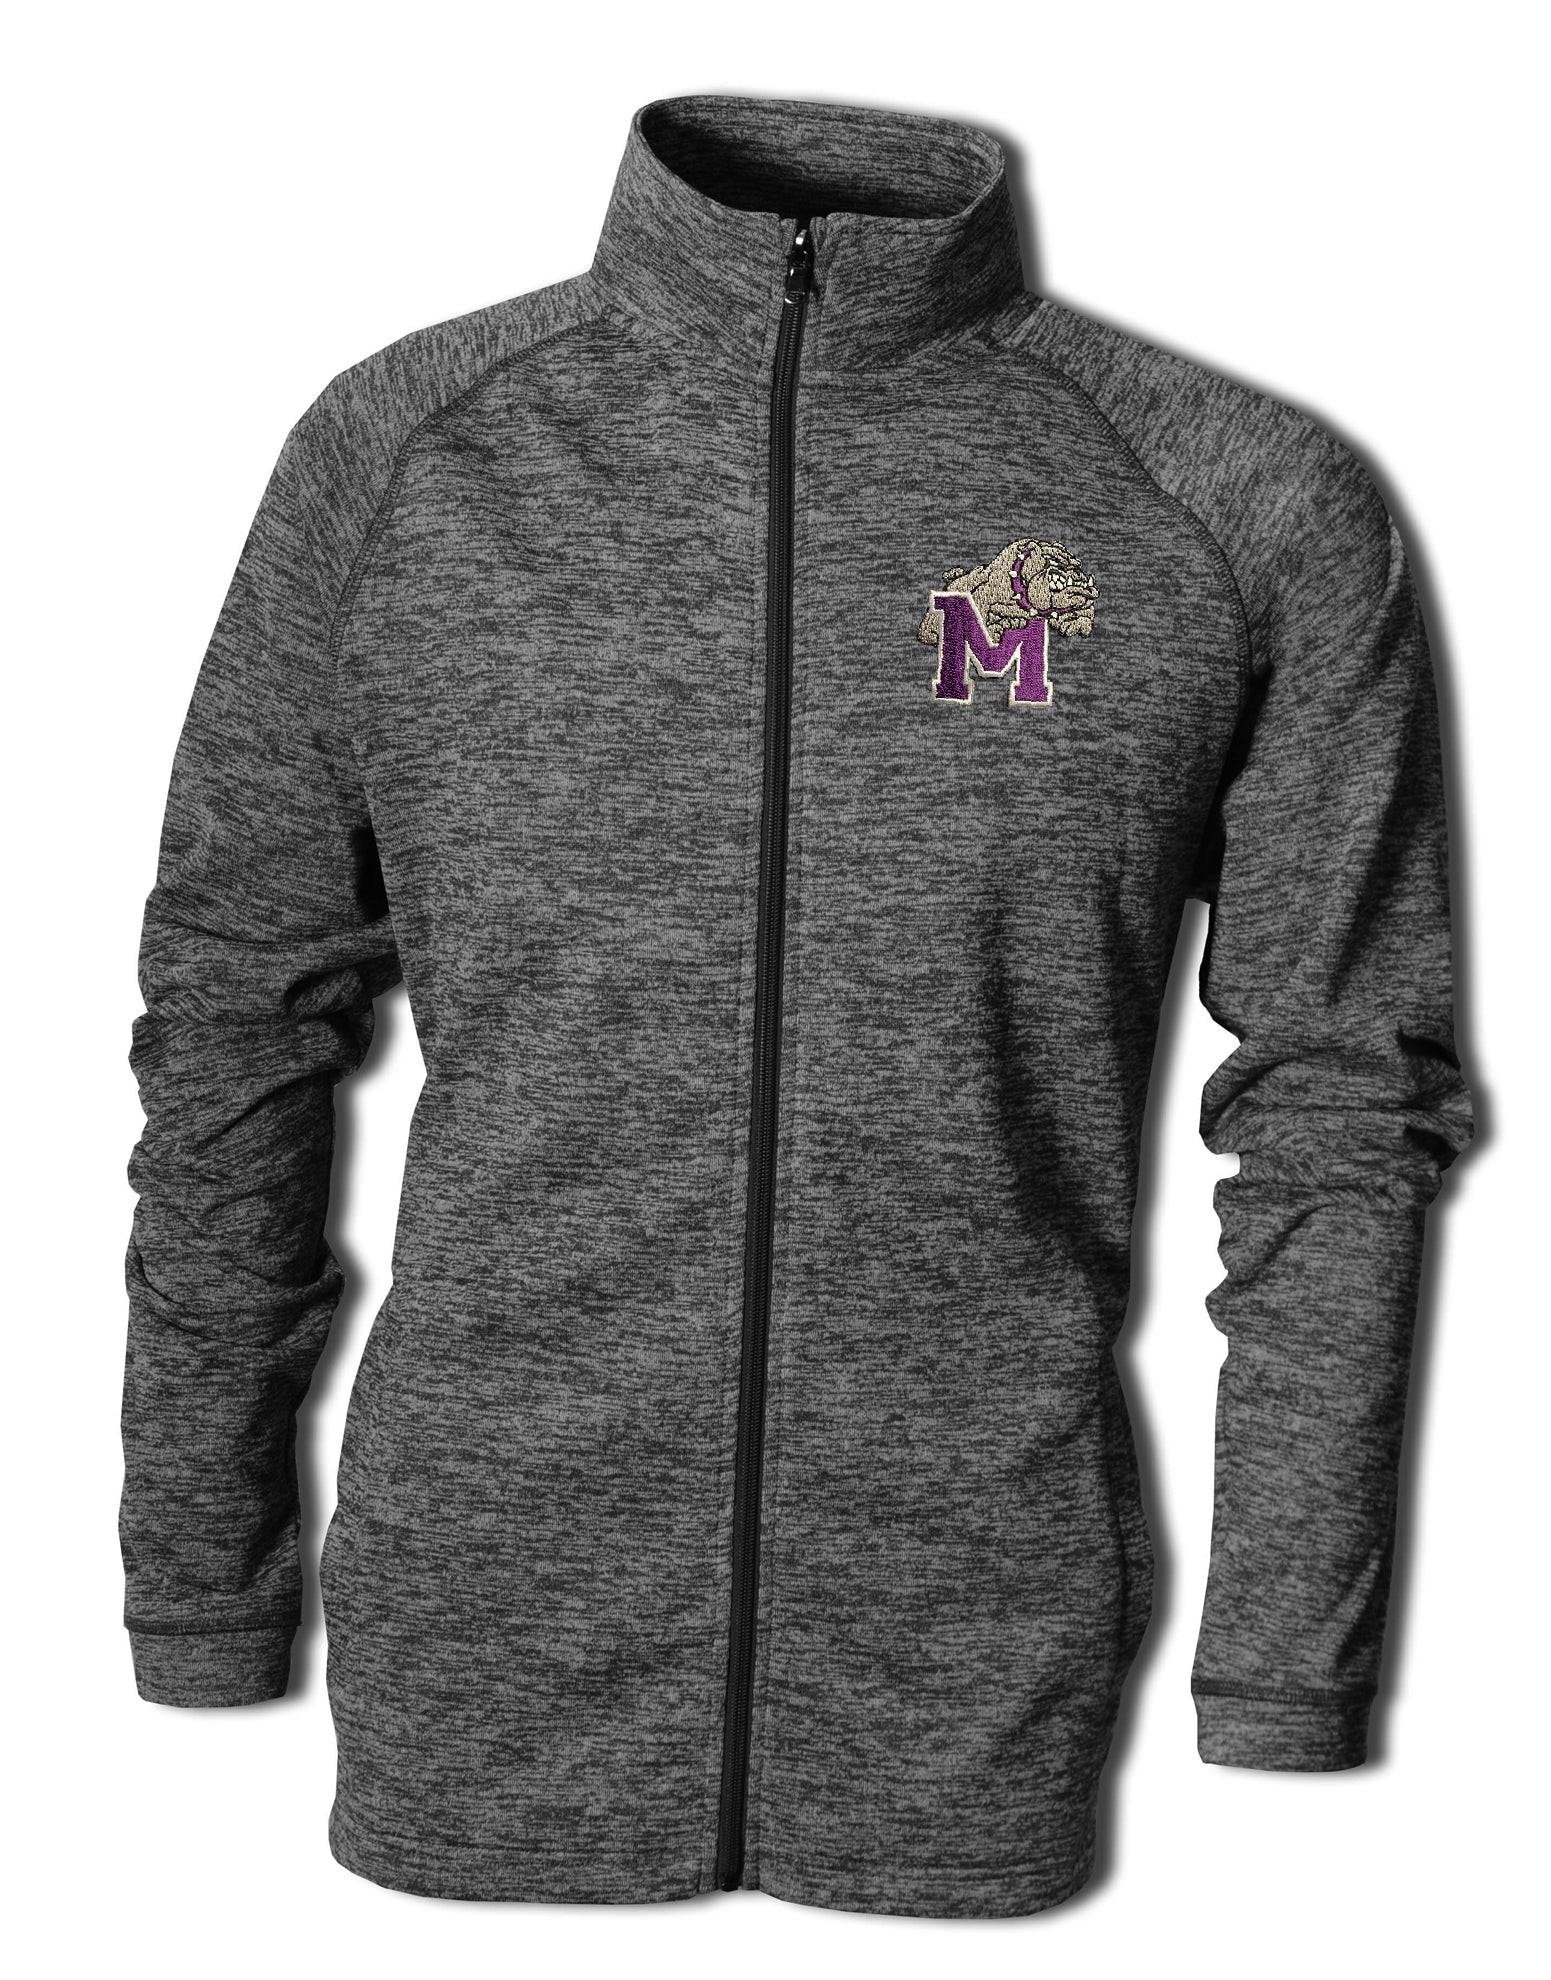 Adult Vintage Heather Full Zip with Bulldog Embroidery